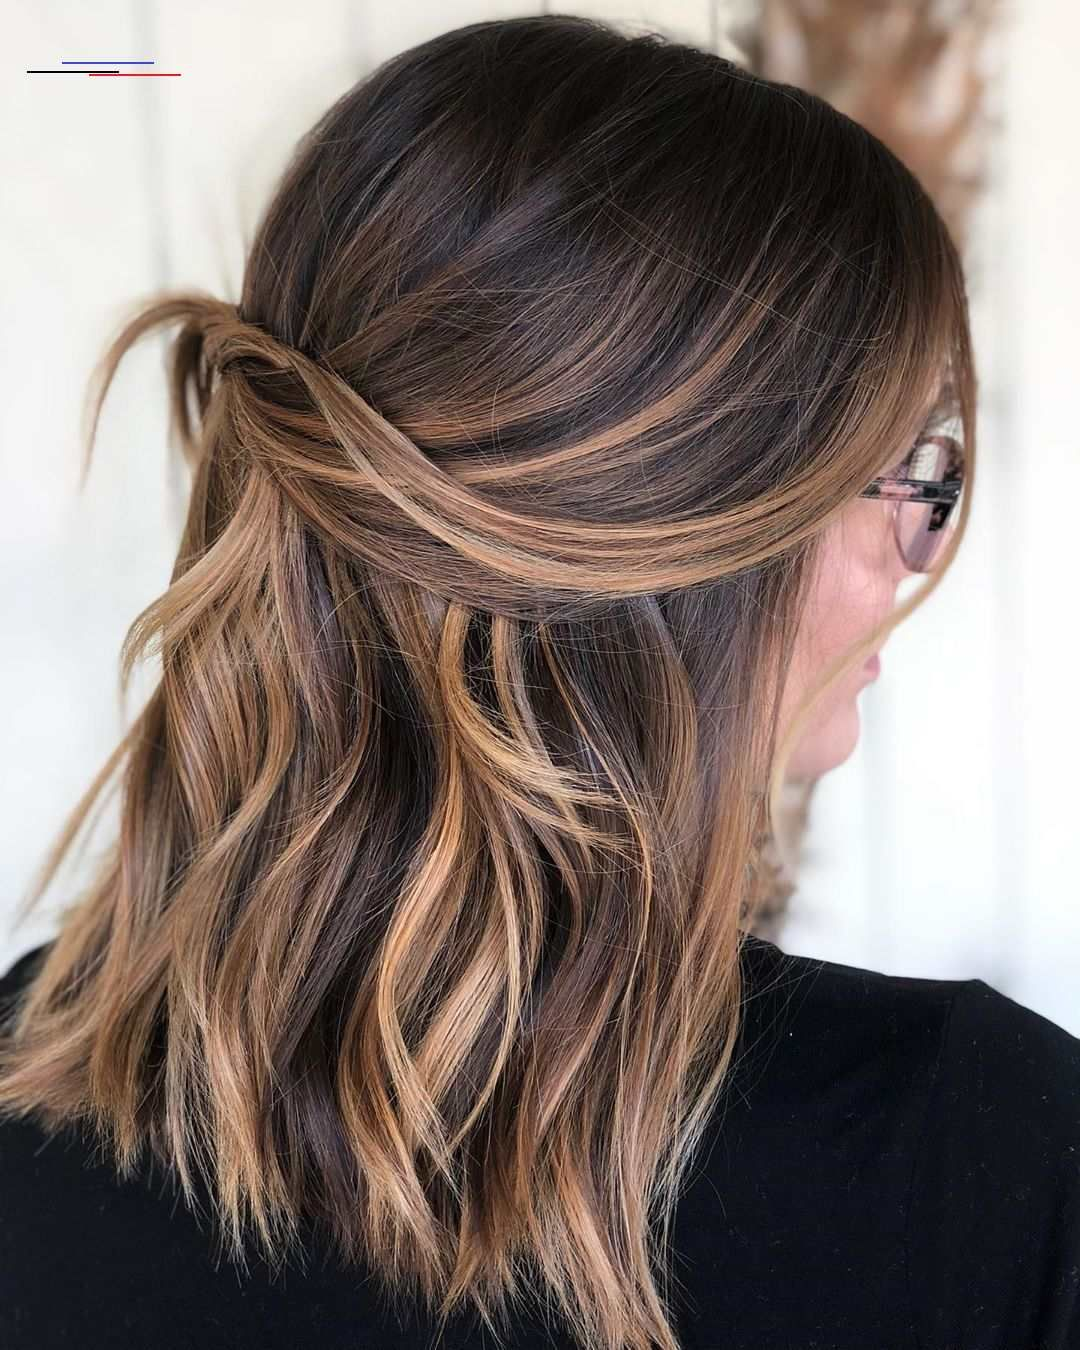 """Christina Crook on Instagram: """"Caramel Mocha � . . Tips when toning brunettes! . 1. If you want a rich brunette, lift to the desired level while maintaining warmth & tone…"""""""